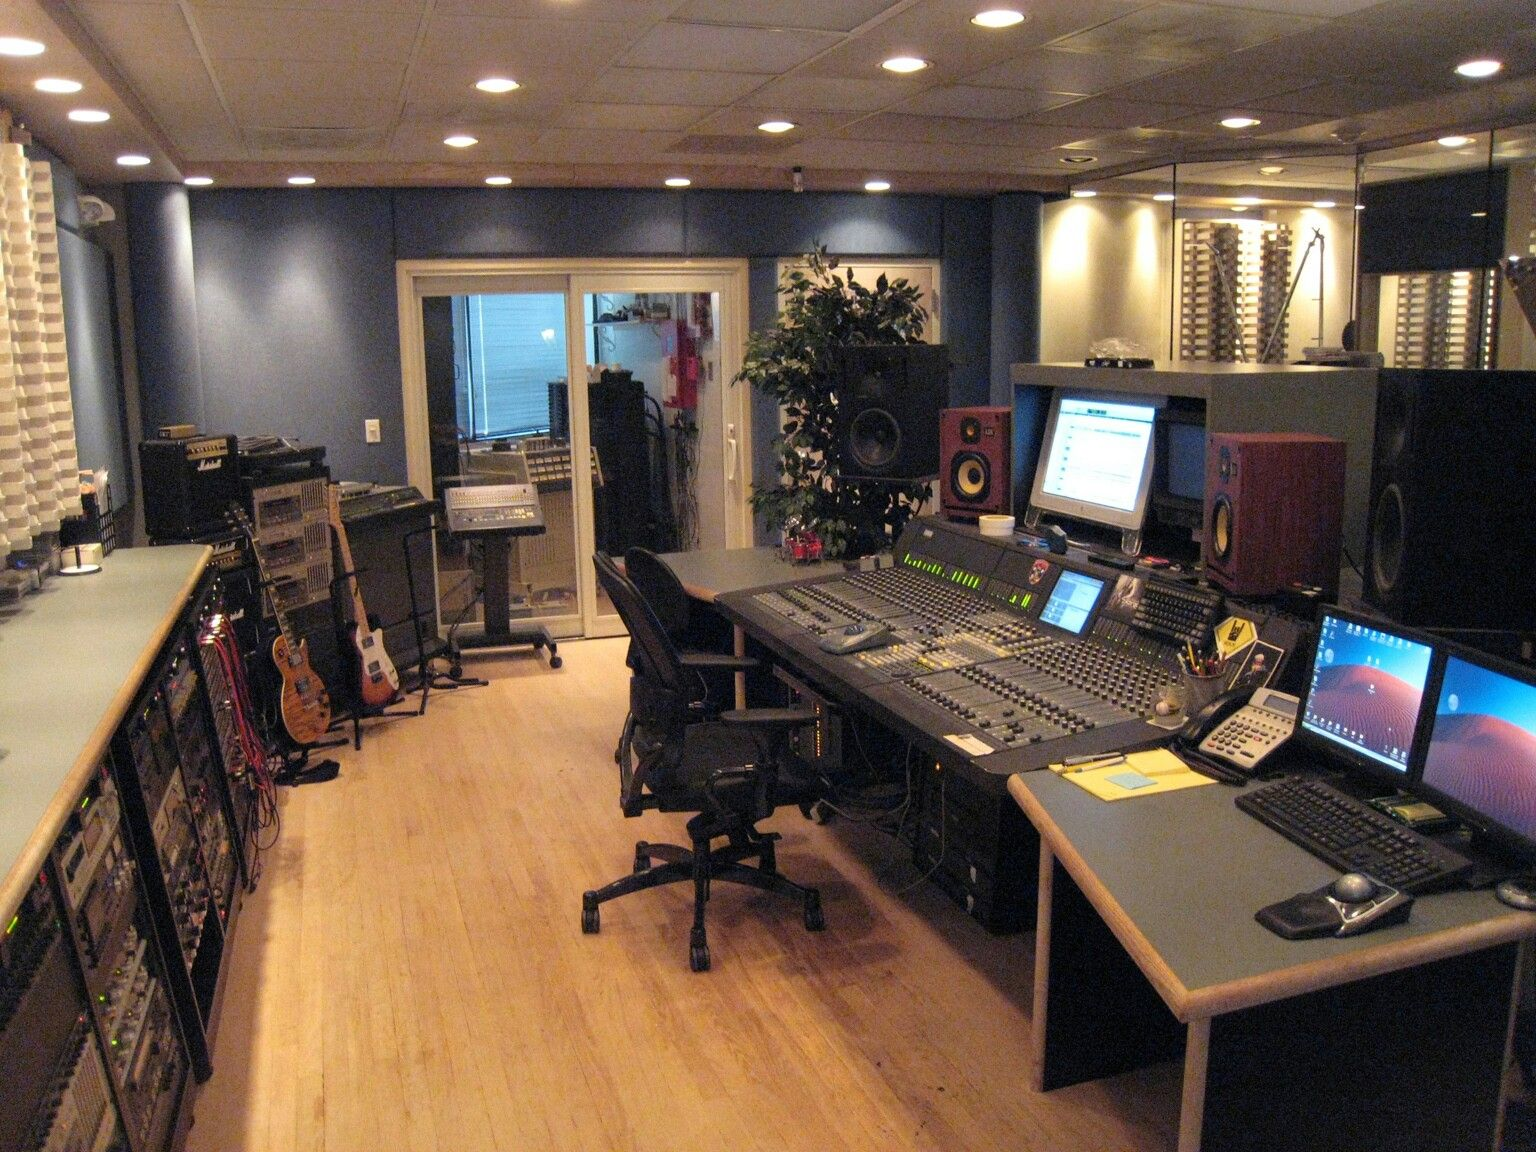 Home Recording Studios, Music Studios, Home Art Studios, Recording Studio  Design, Studio Room, Studio Spaces, Studio Ideas, House Management, Slc